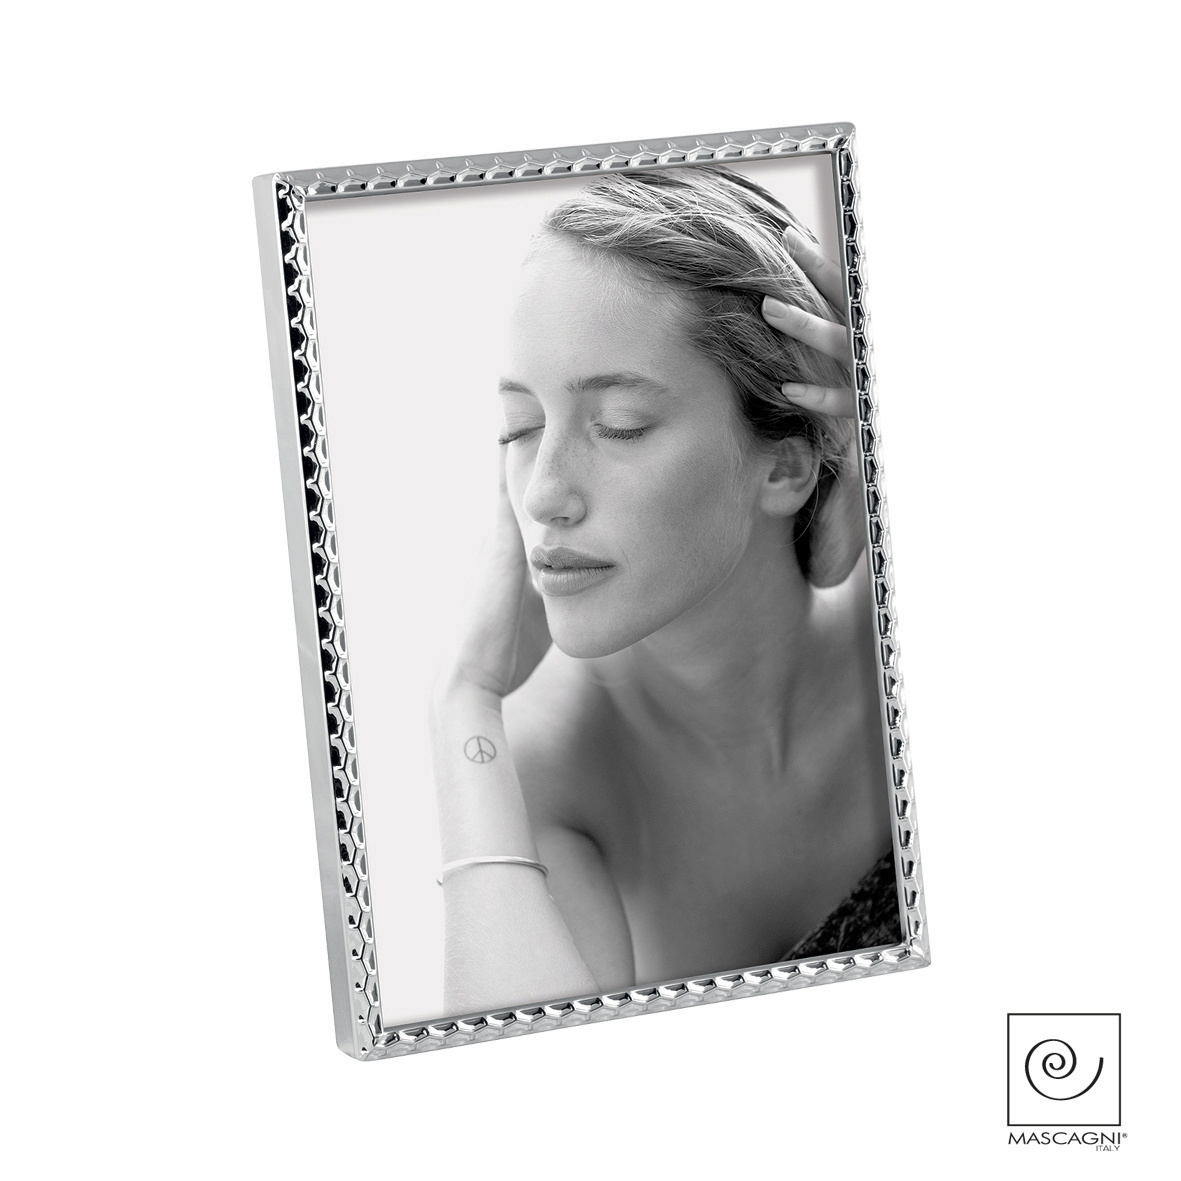 Art Mascagni A691 PHOTO FRAME 13X18